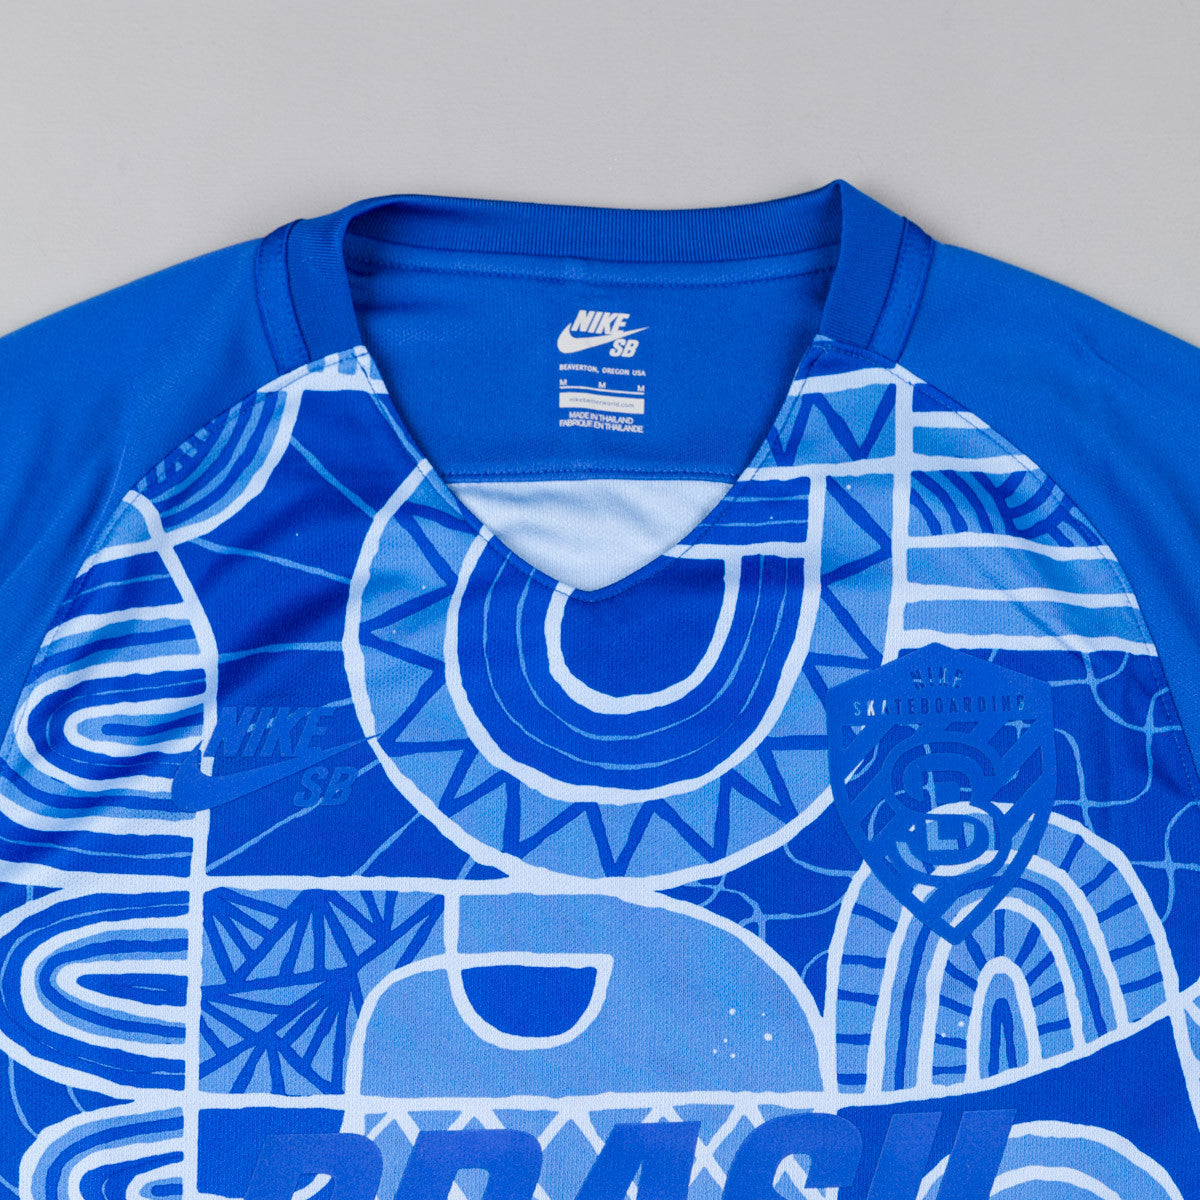 Nike SB x FB Football Jersey - Varsity Royal